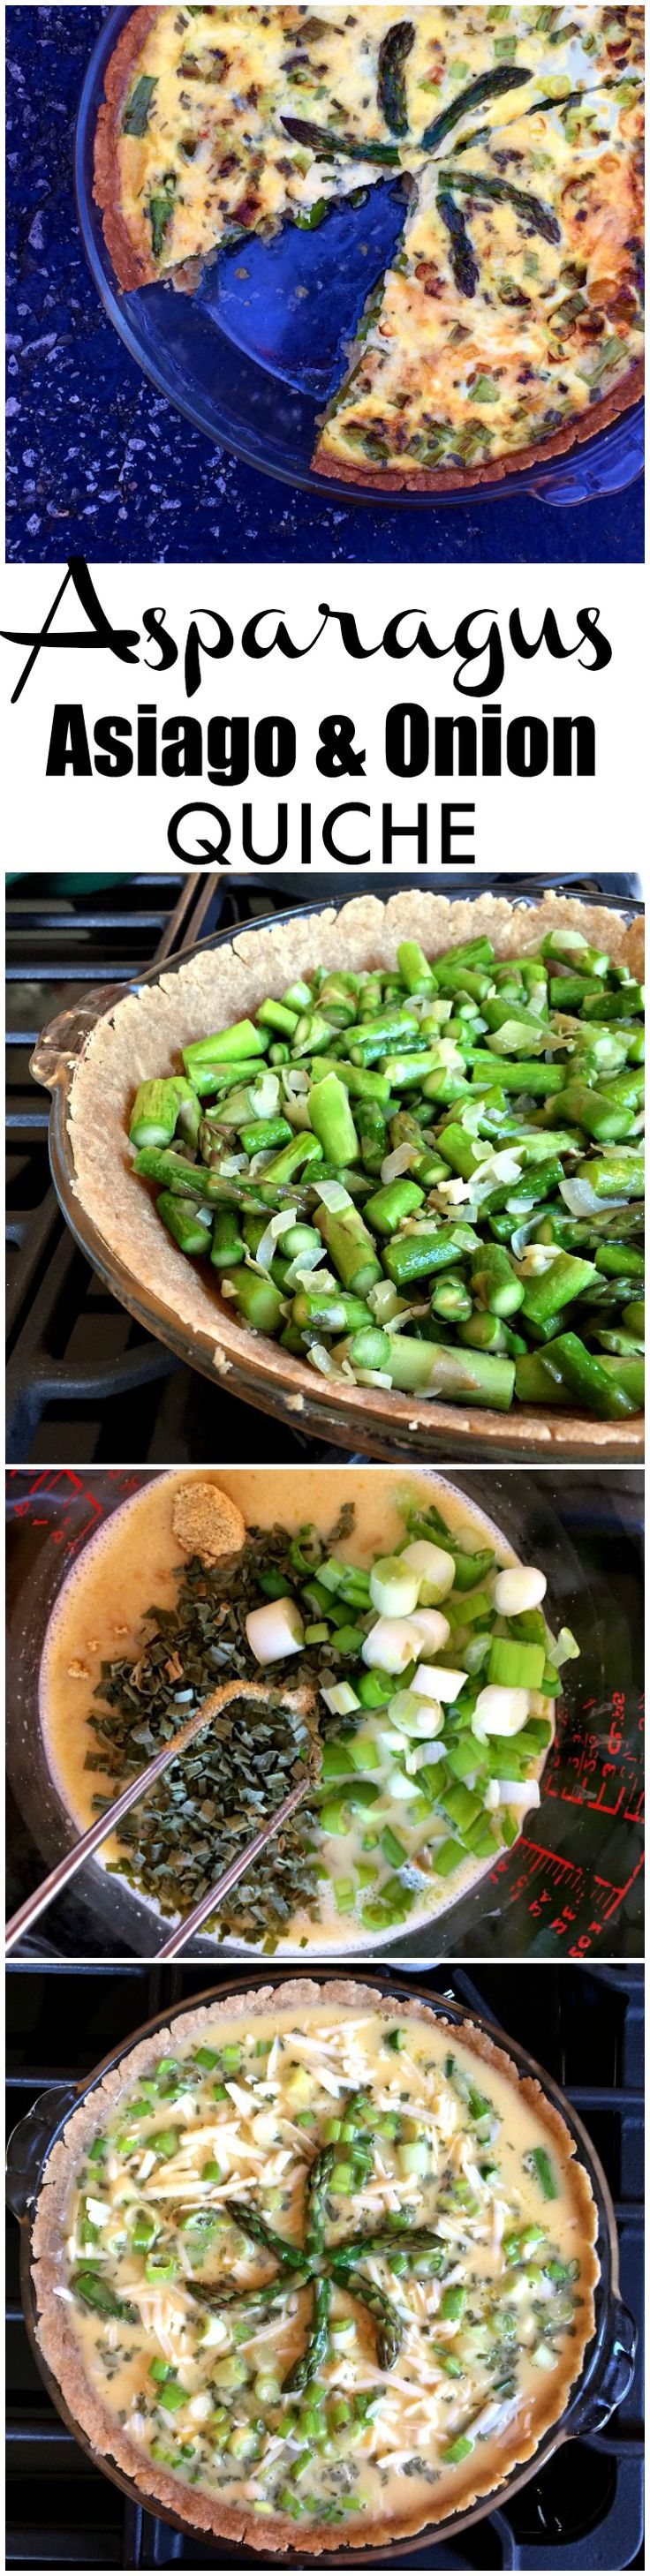 ... Asparagus Quiche on Pinterest | Quiches, Quiche Recipes and Asparagus